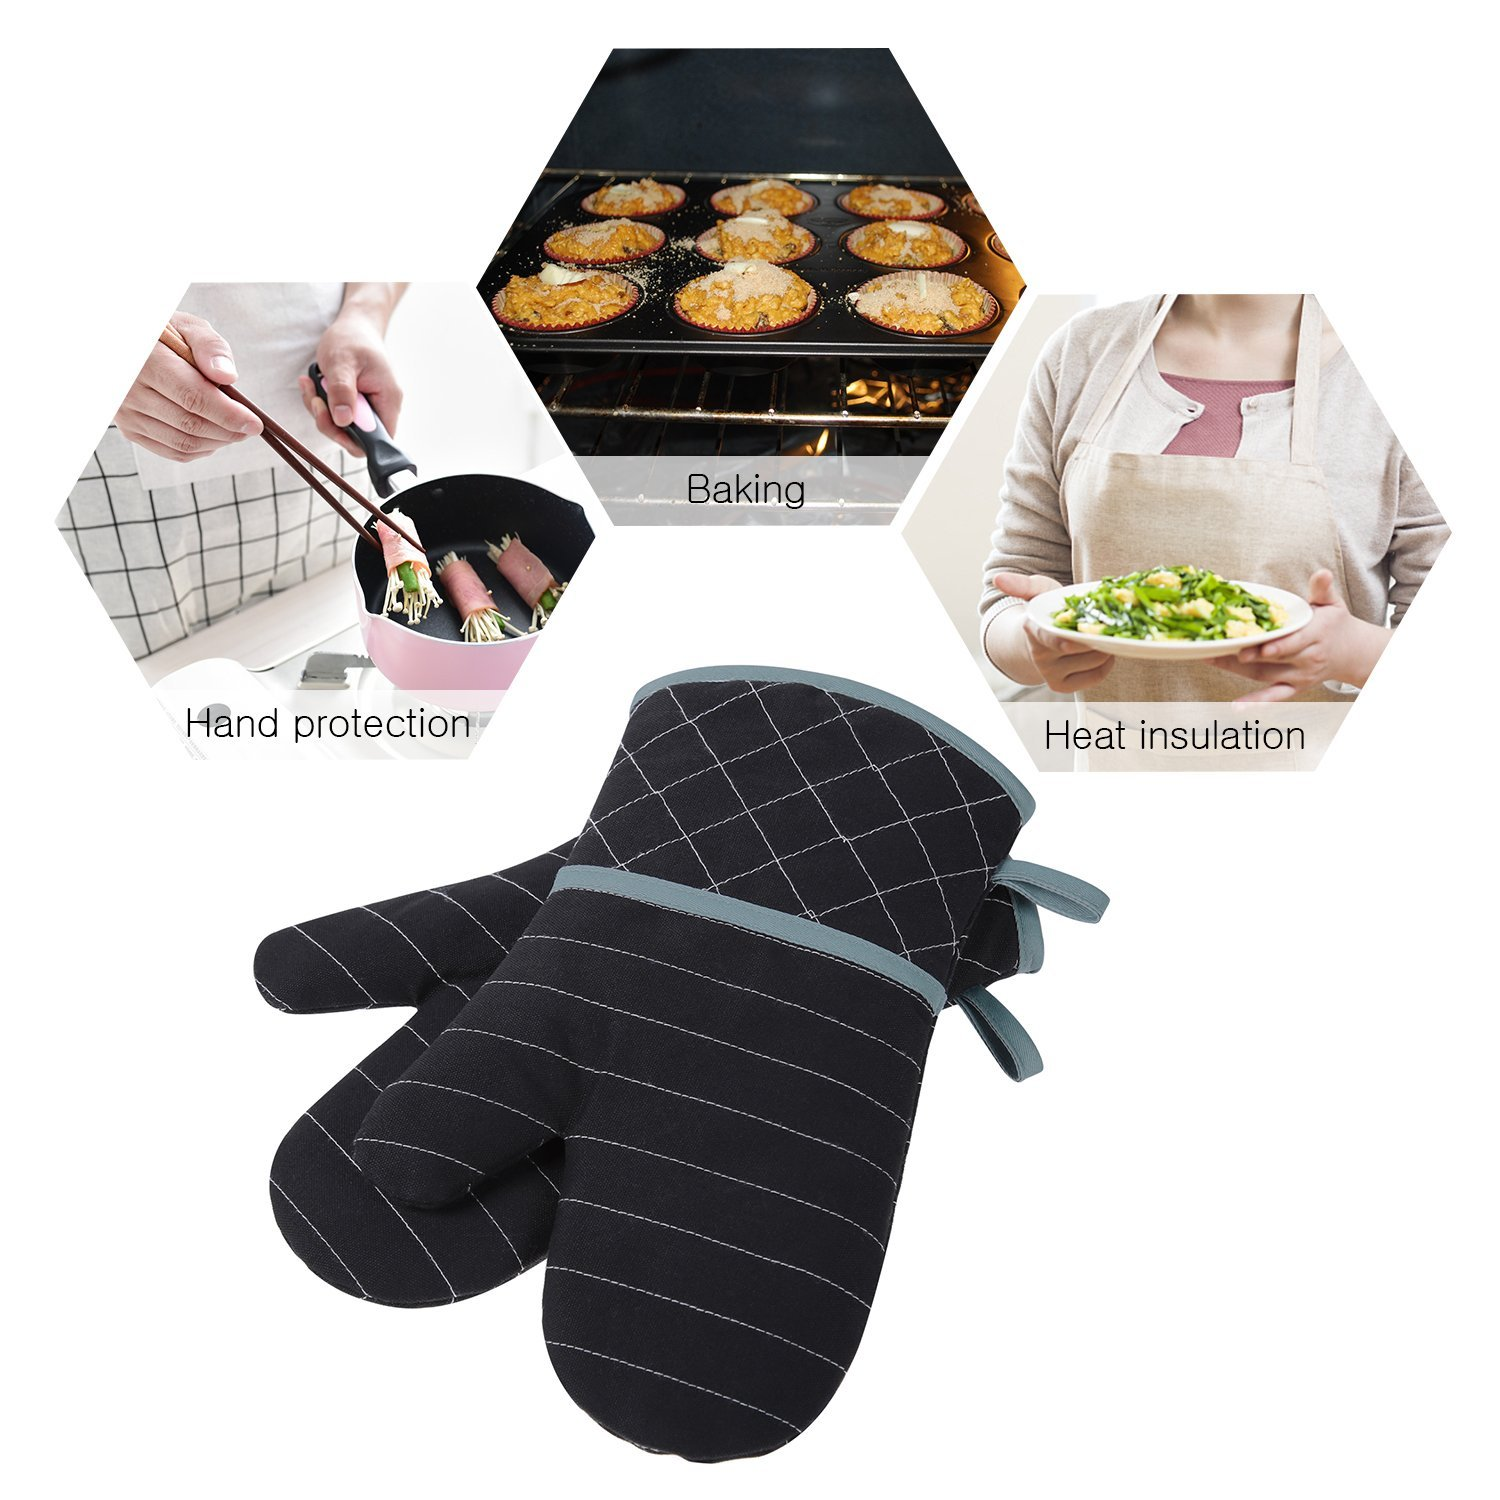 Homever Silicone Oven Mitts, Heat Resistant with Recycled Cotton Infill, Flexibility Non-Slip Kitchen Oven Gloves for Baking and Kitchen (Black)